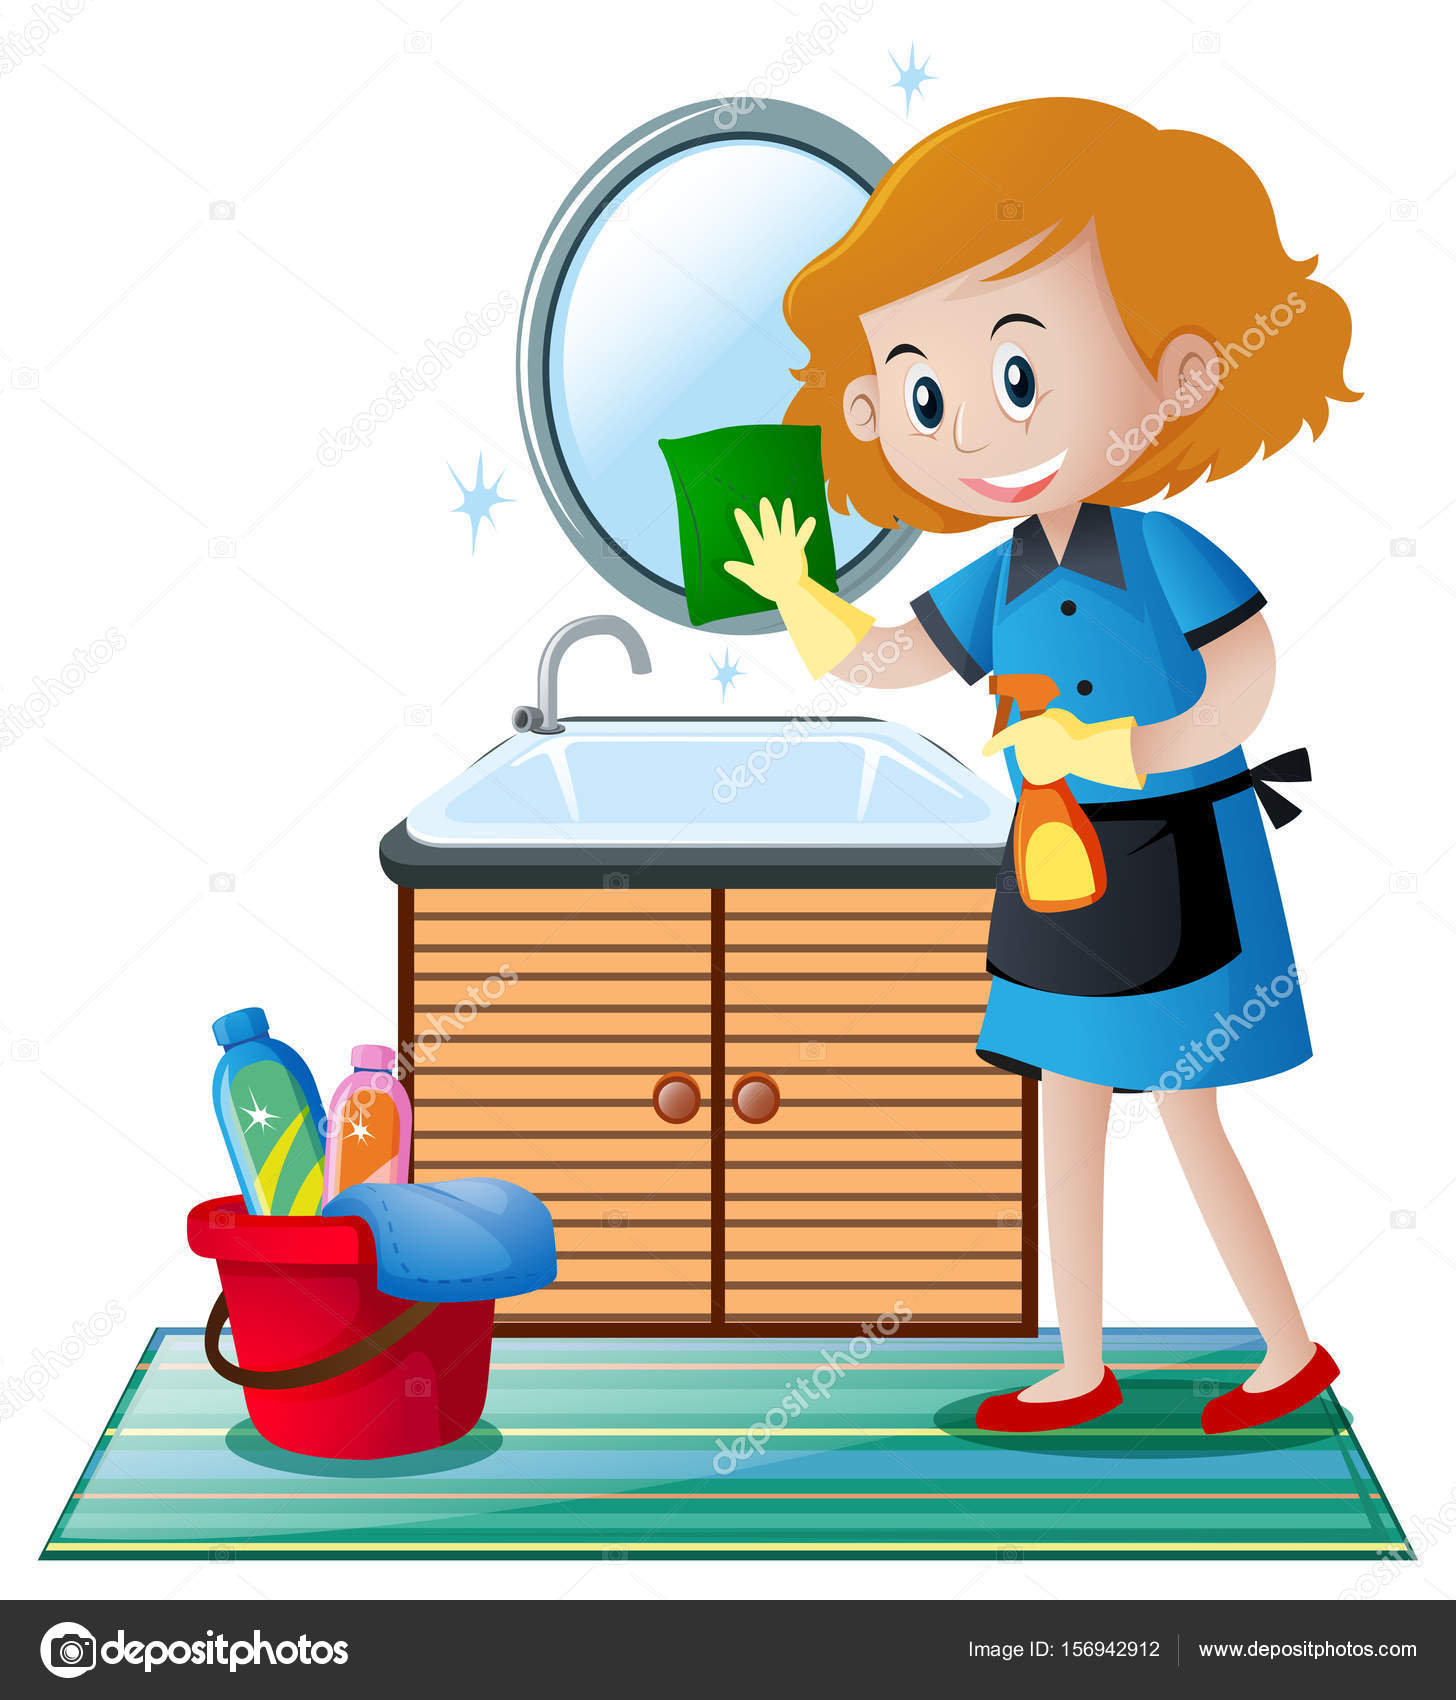 Waschbecken Clipart The Cleaner Cleaning The Toilet Clipart Station